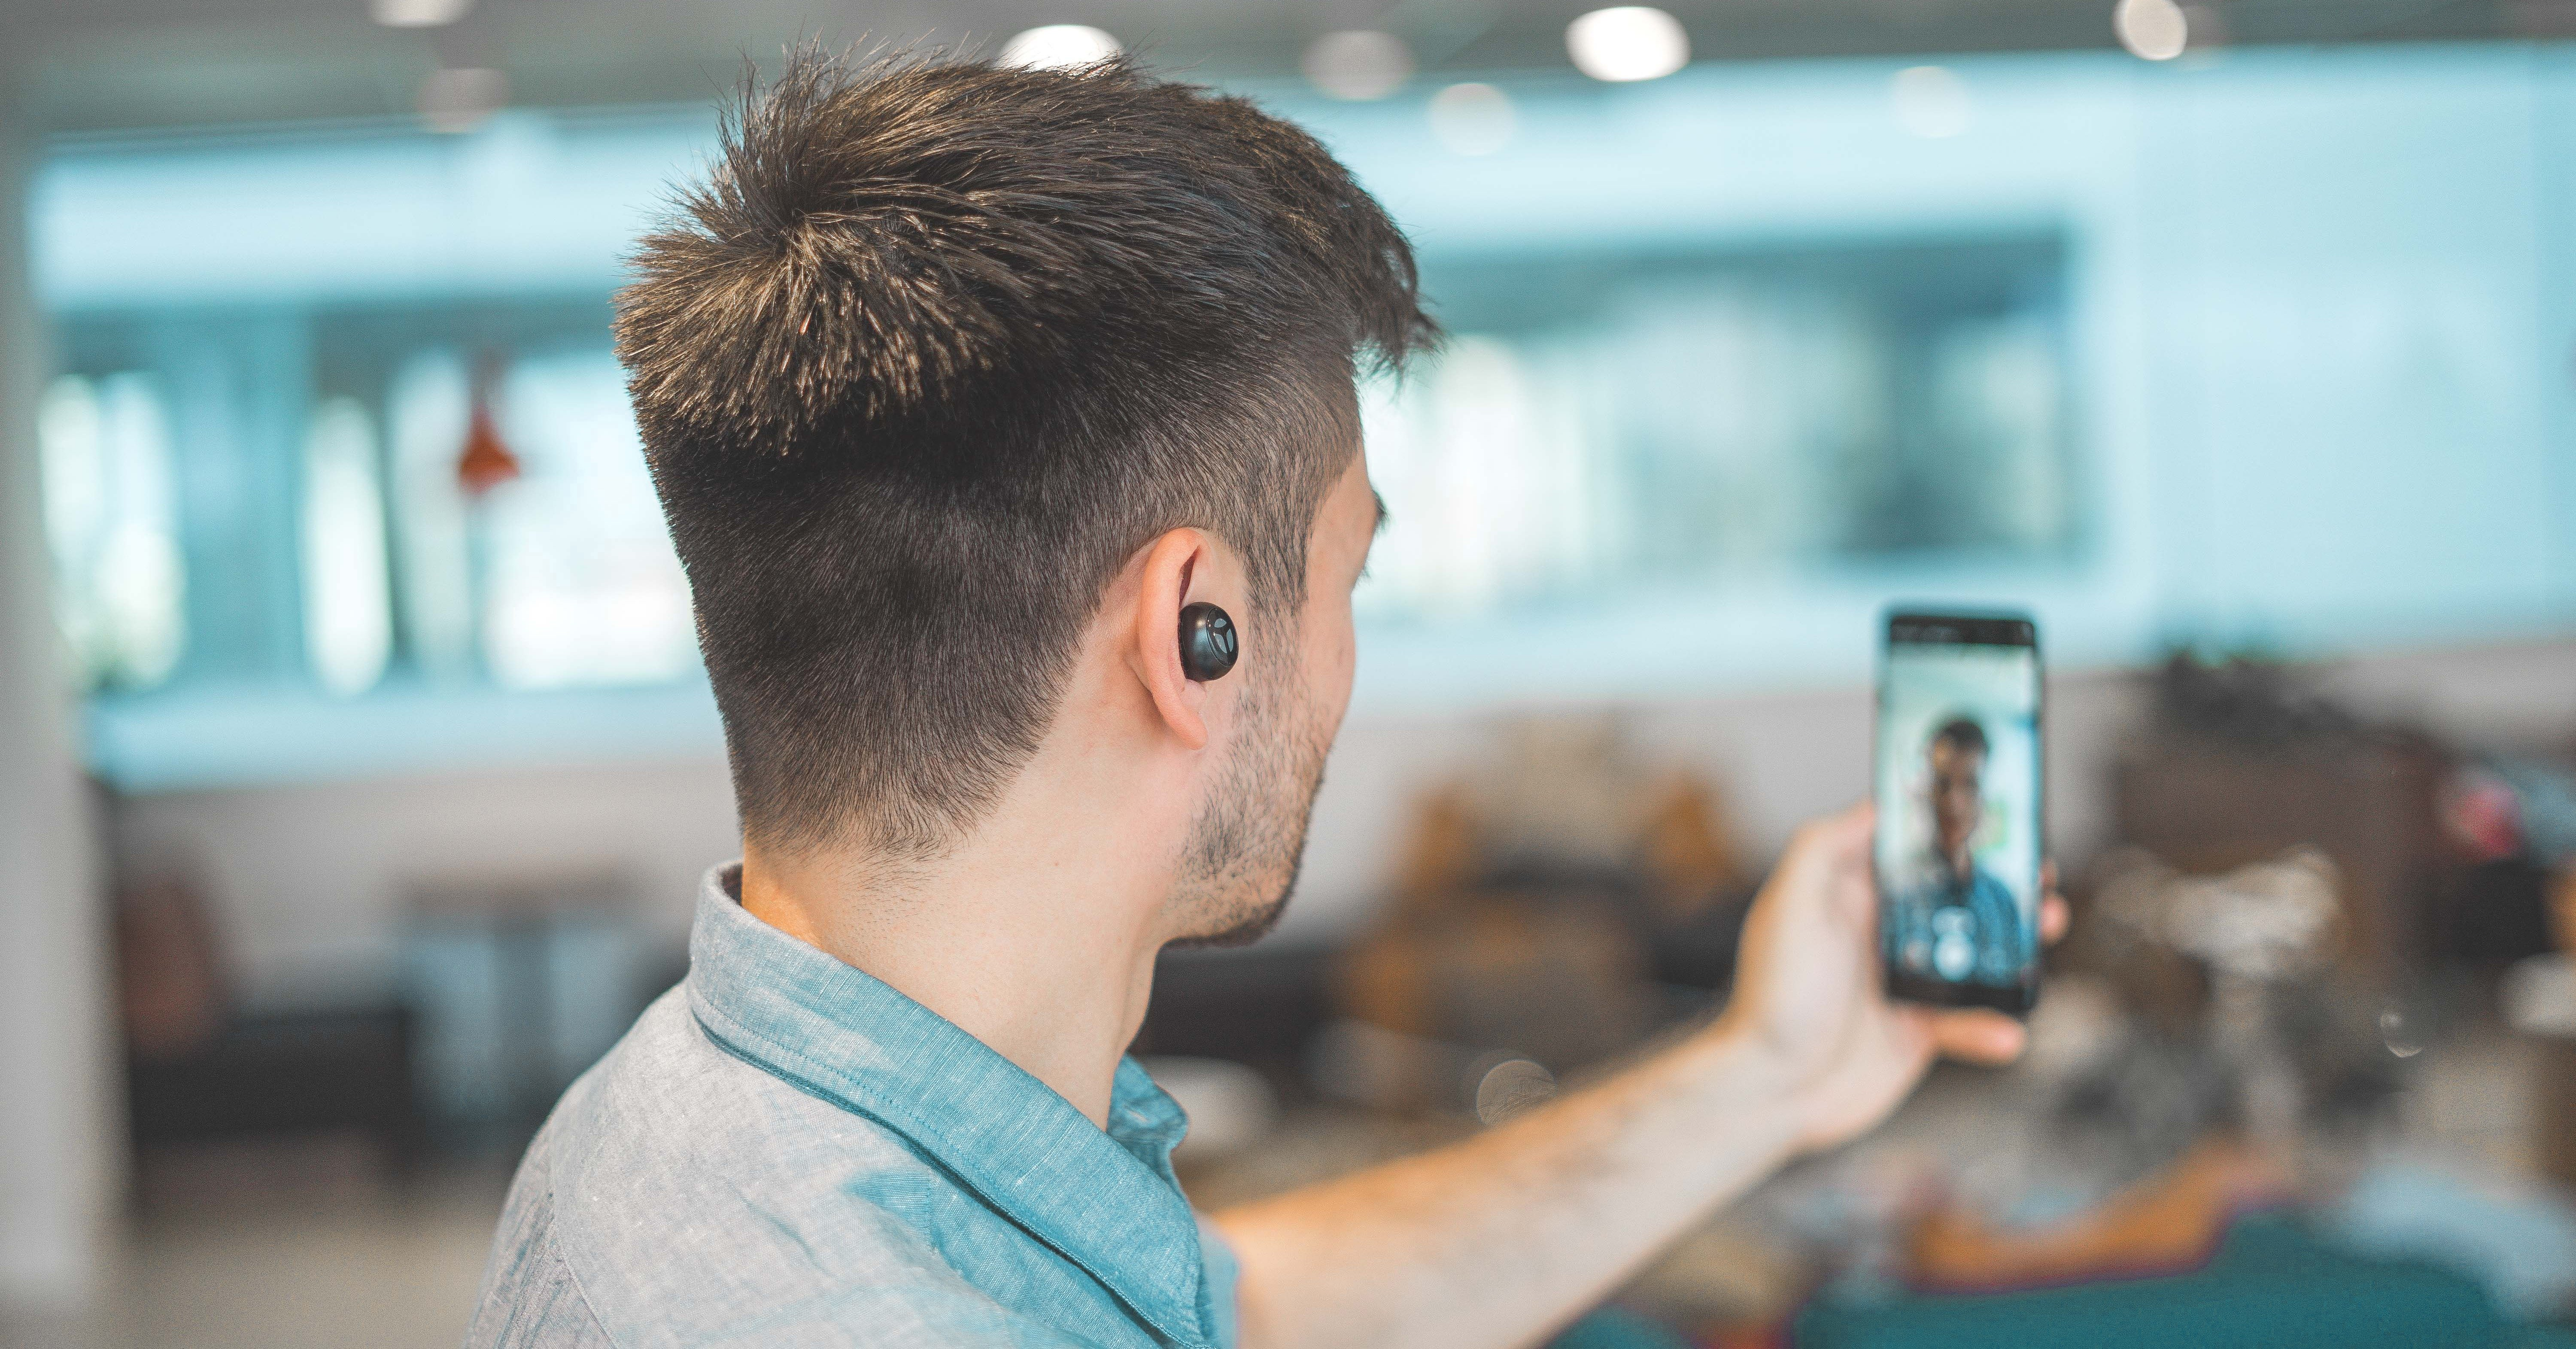 Communication Trends in the Workplace That Need to Be Adopted